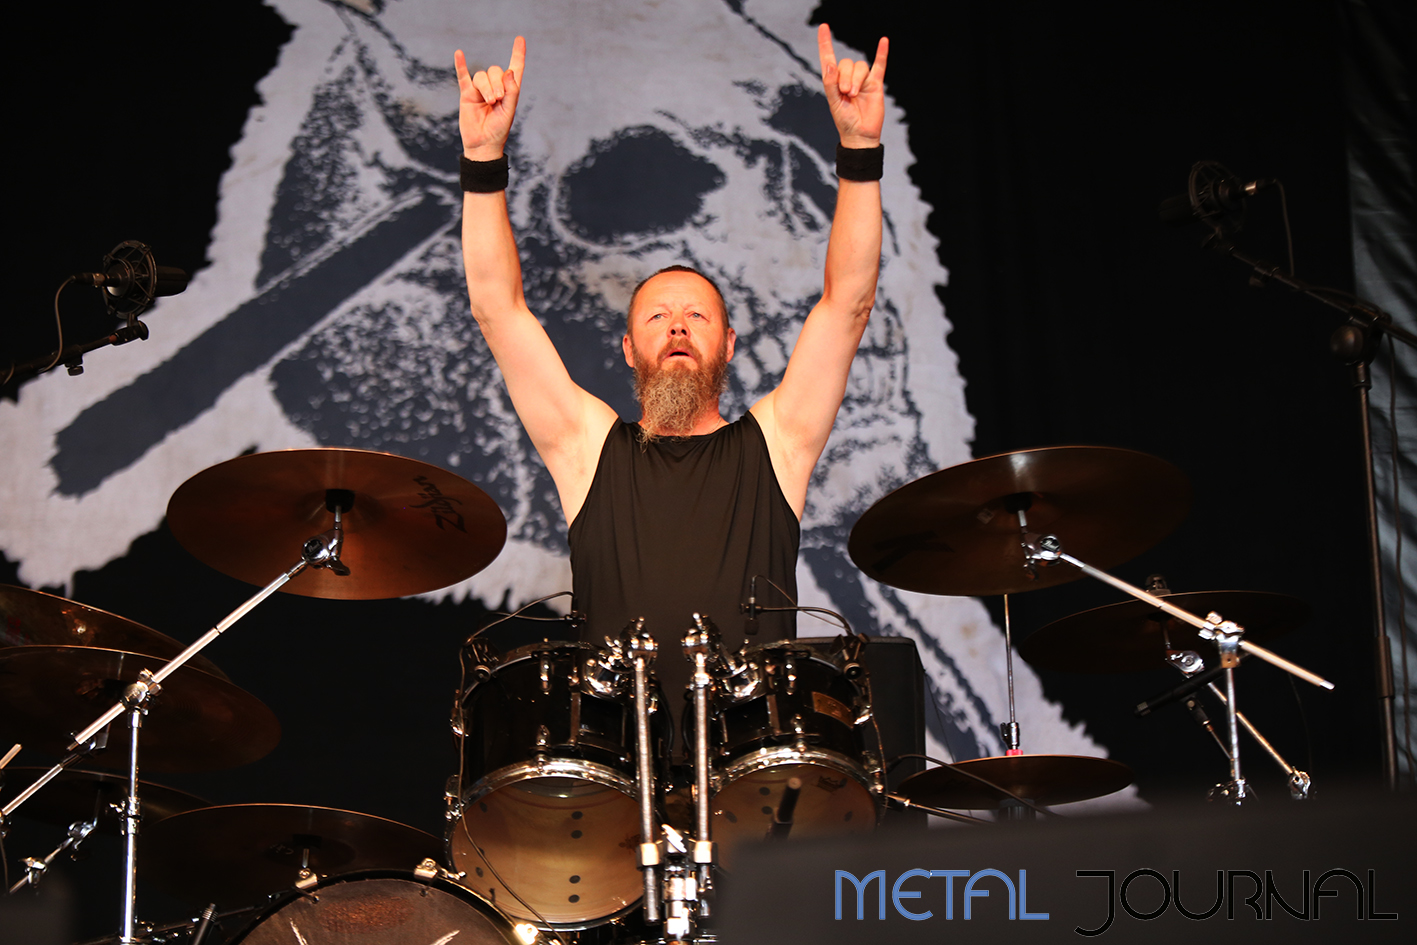 candlemass - metal journal rock fest barcelona 2019 pic 2